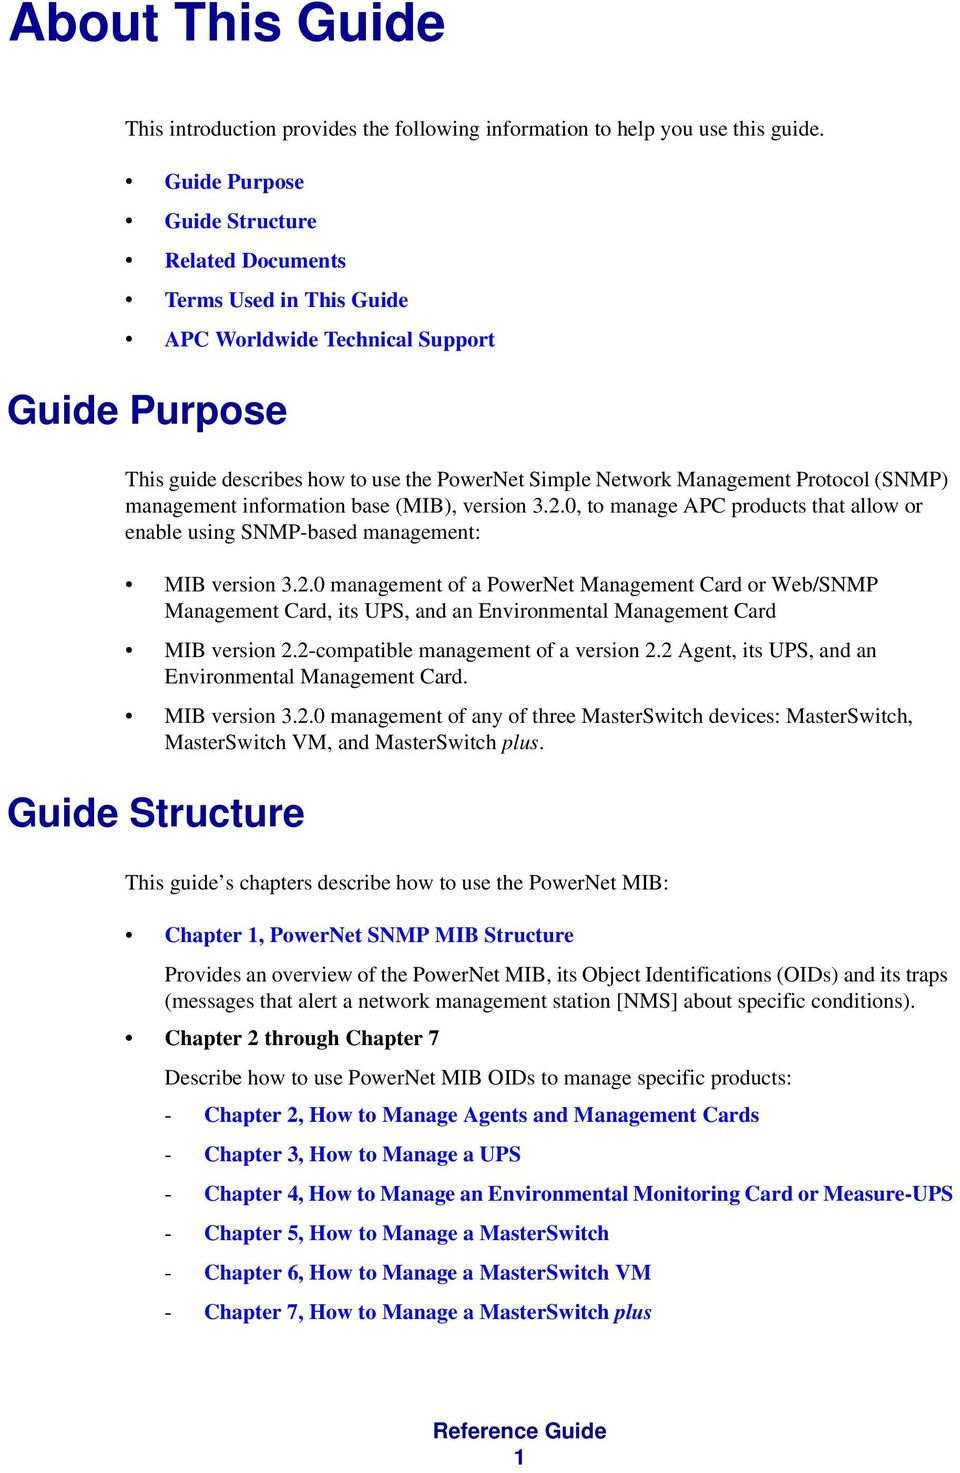 (SNMP) management information base (MIB), version 3.2.0, to manage APC products that allow or enable using SNMP-based management: MIB version 3.2.0 management of a PowerNet Management Card or Web/SNMP Management Card, its UPS, and an Environmental Management Card MIB version 2.